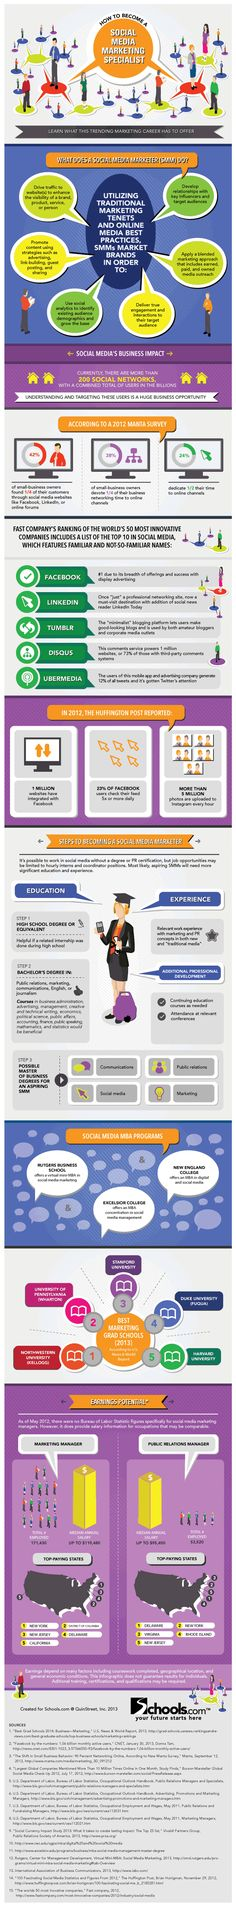 How To Become a Social Media Marketing Specialist #Infographic #Career #HowTo